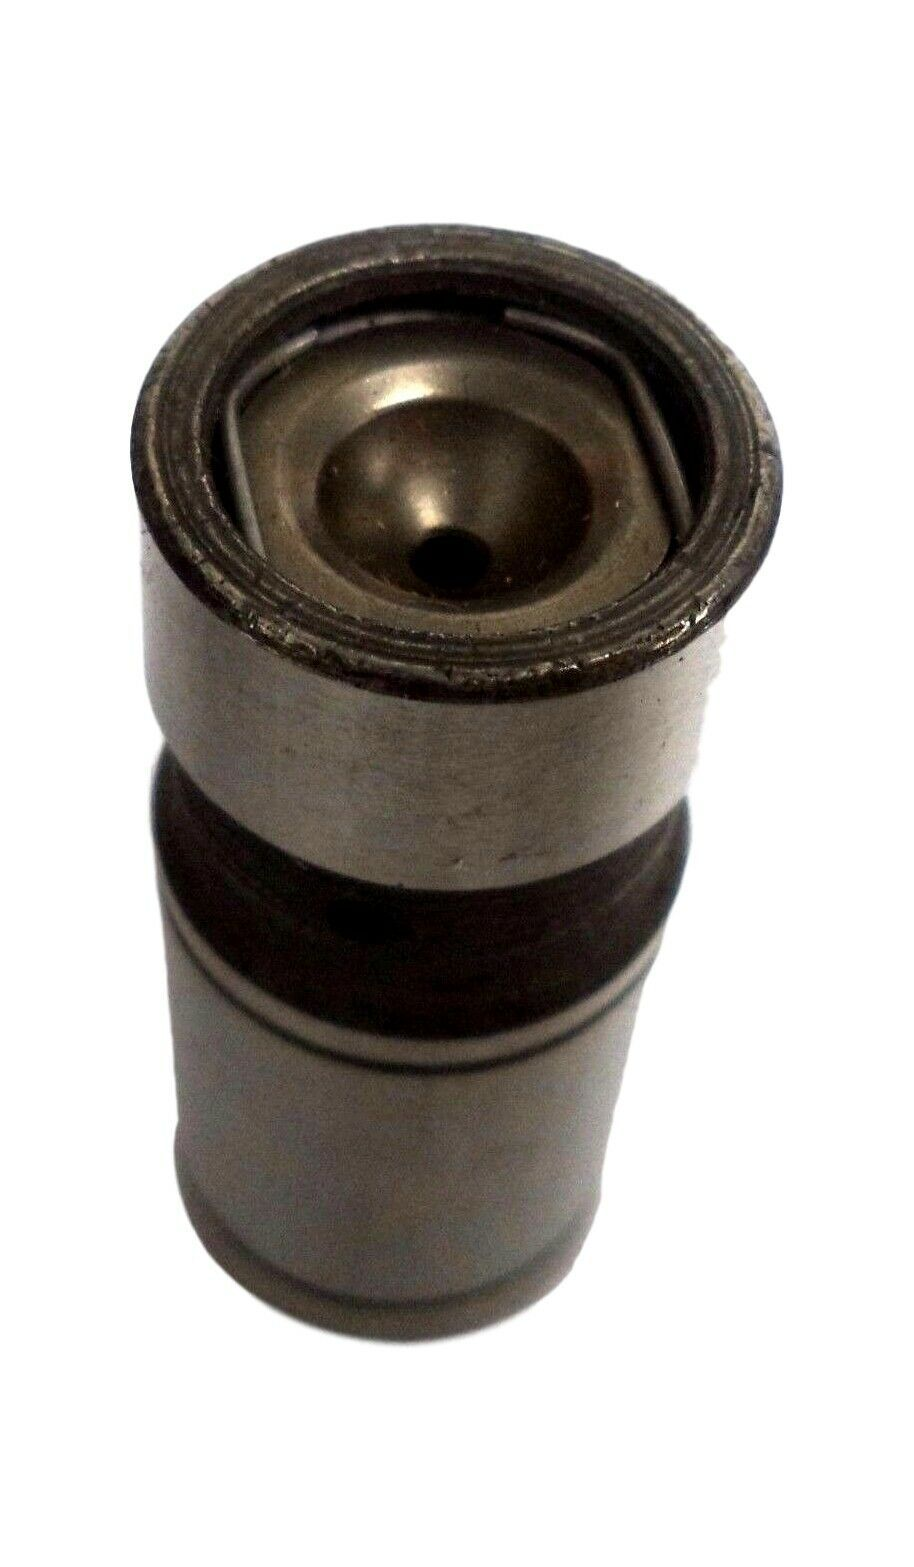 ACDelco ACD HL66 GM OEM 5232720 Valve Lifter 1064C0 LC15 GR 0.459